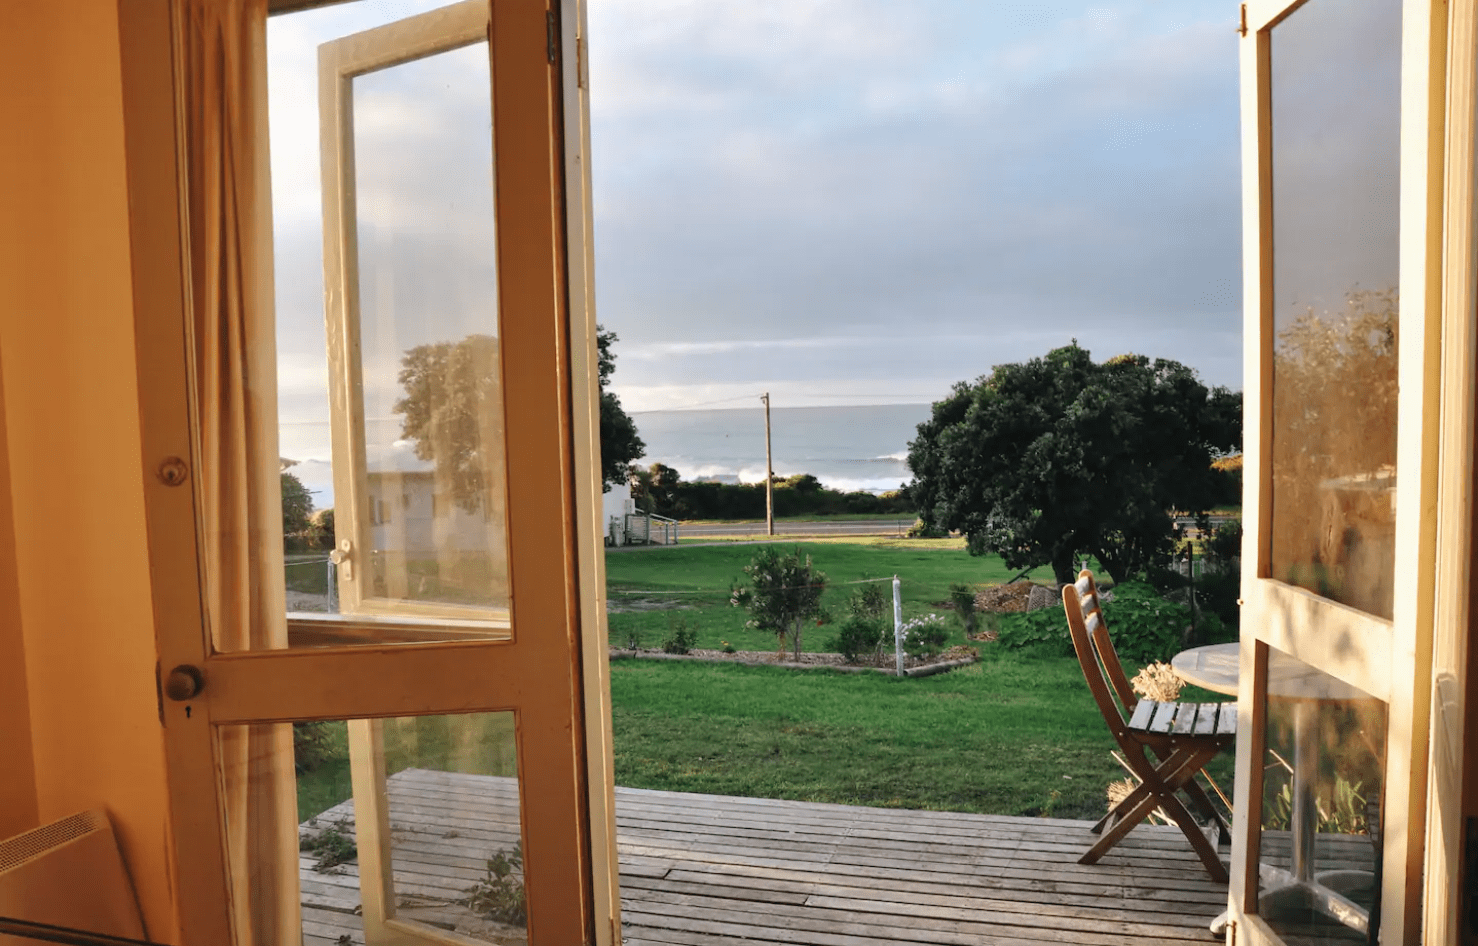 The 10 Most Beautiful Lorne Airbnbs